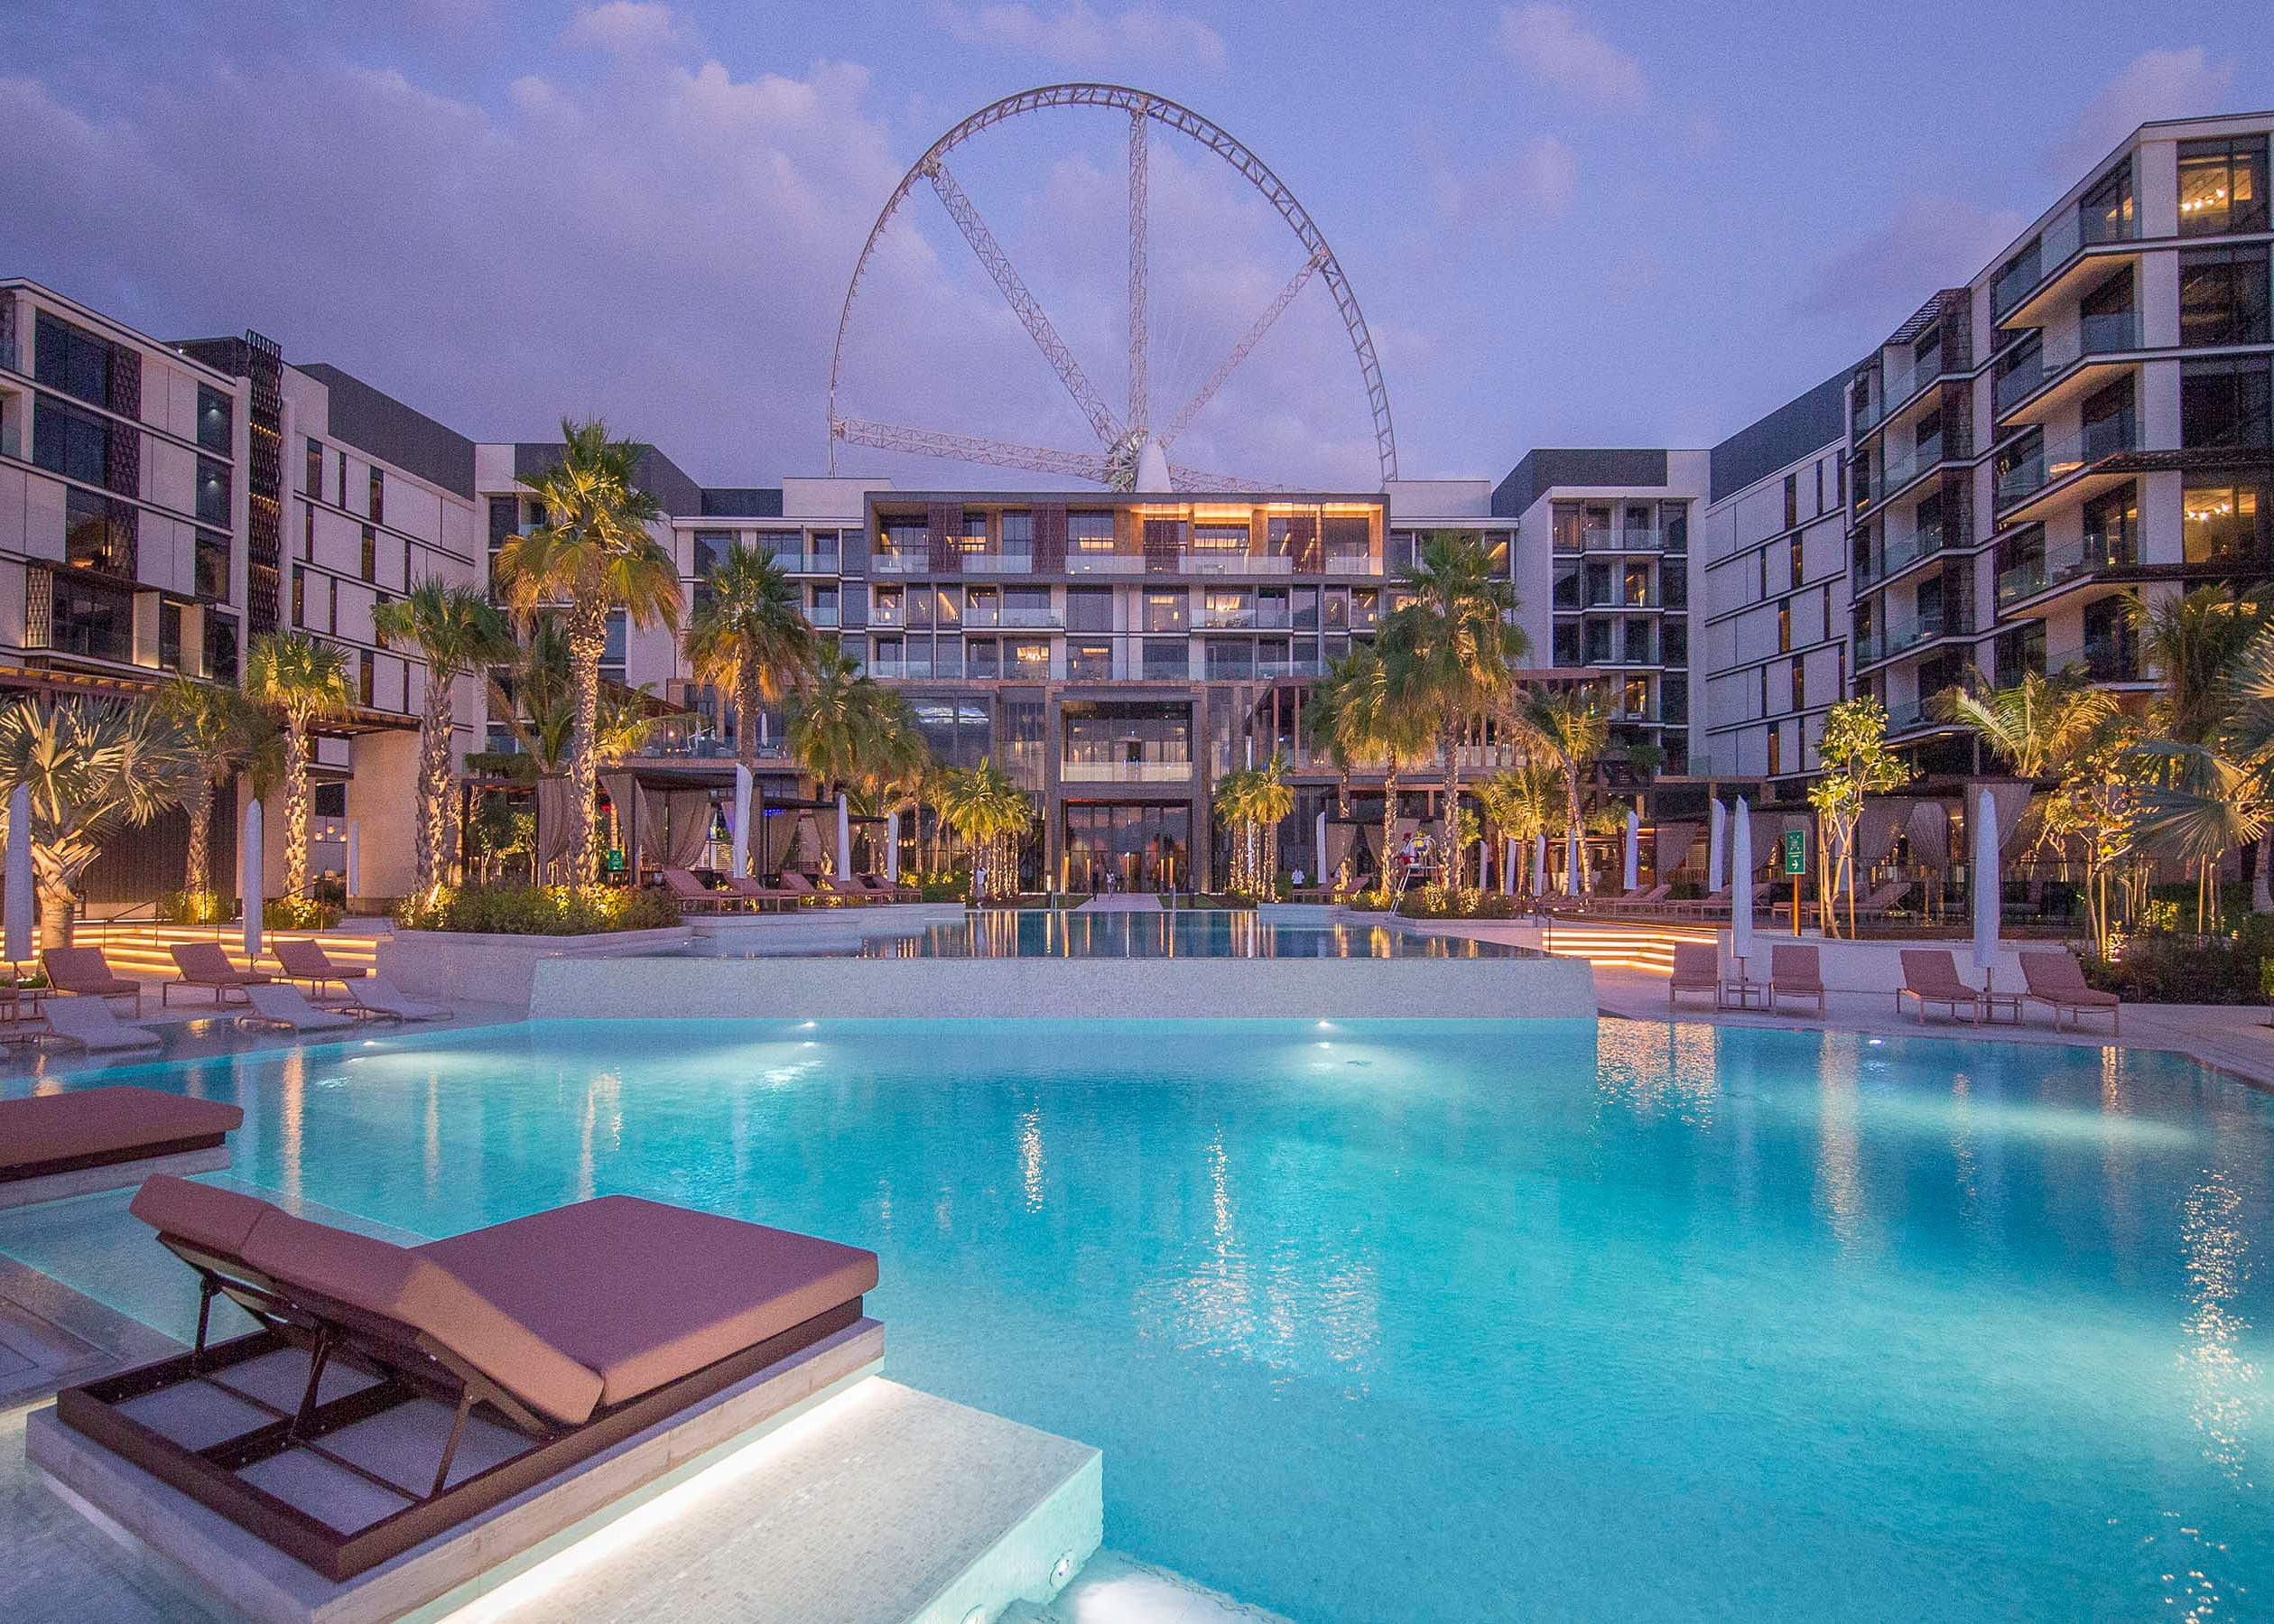 Resort pool with observation wheel